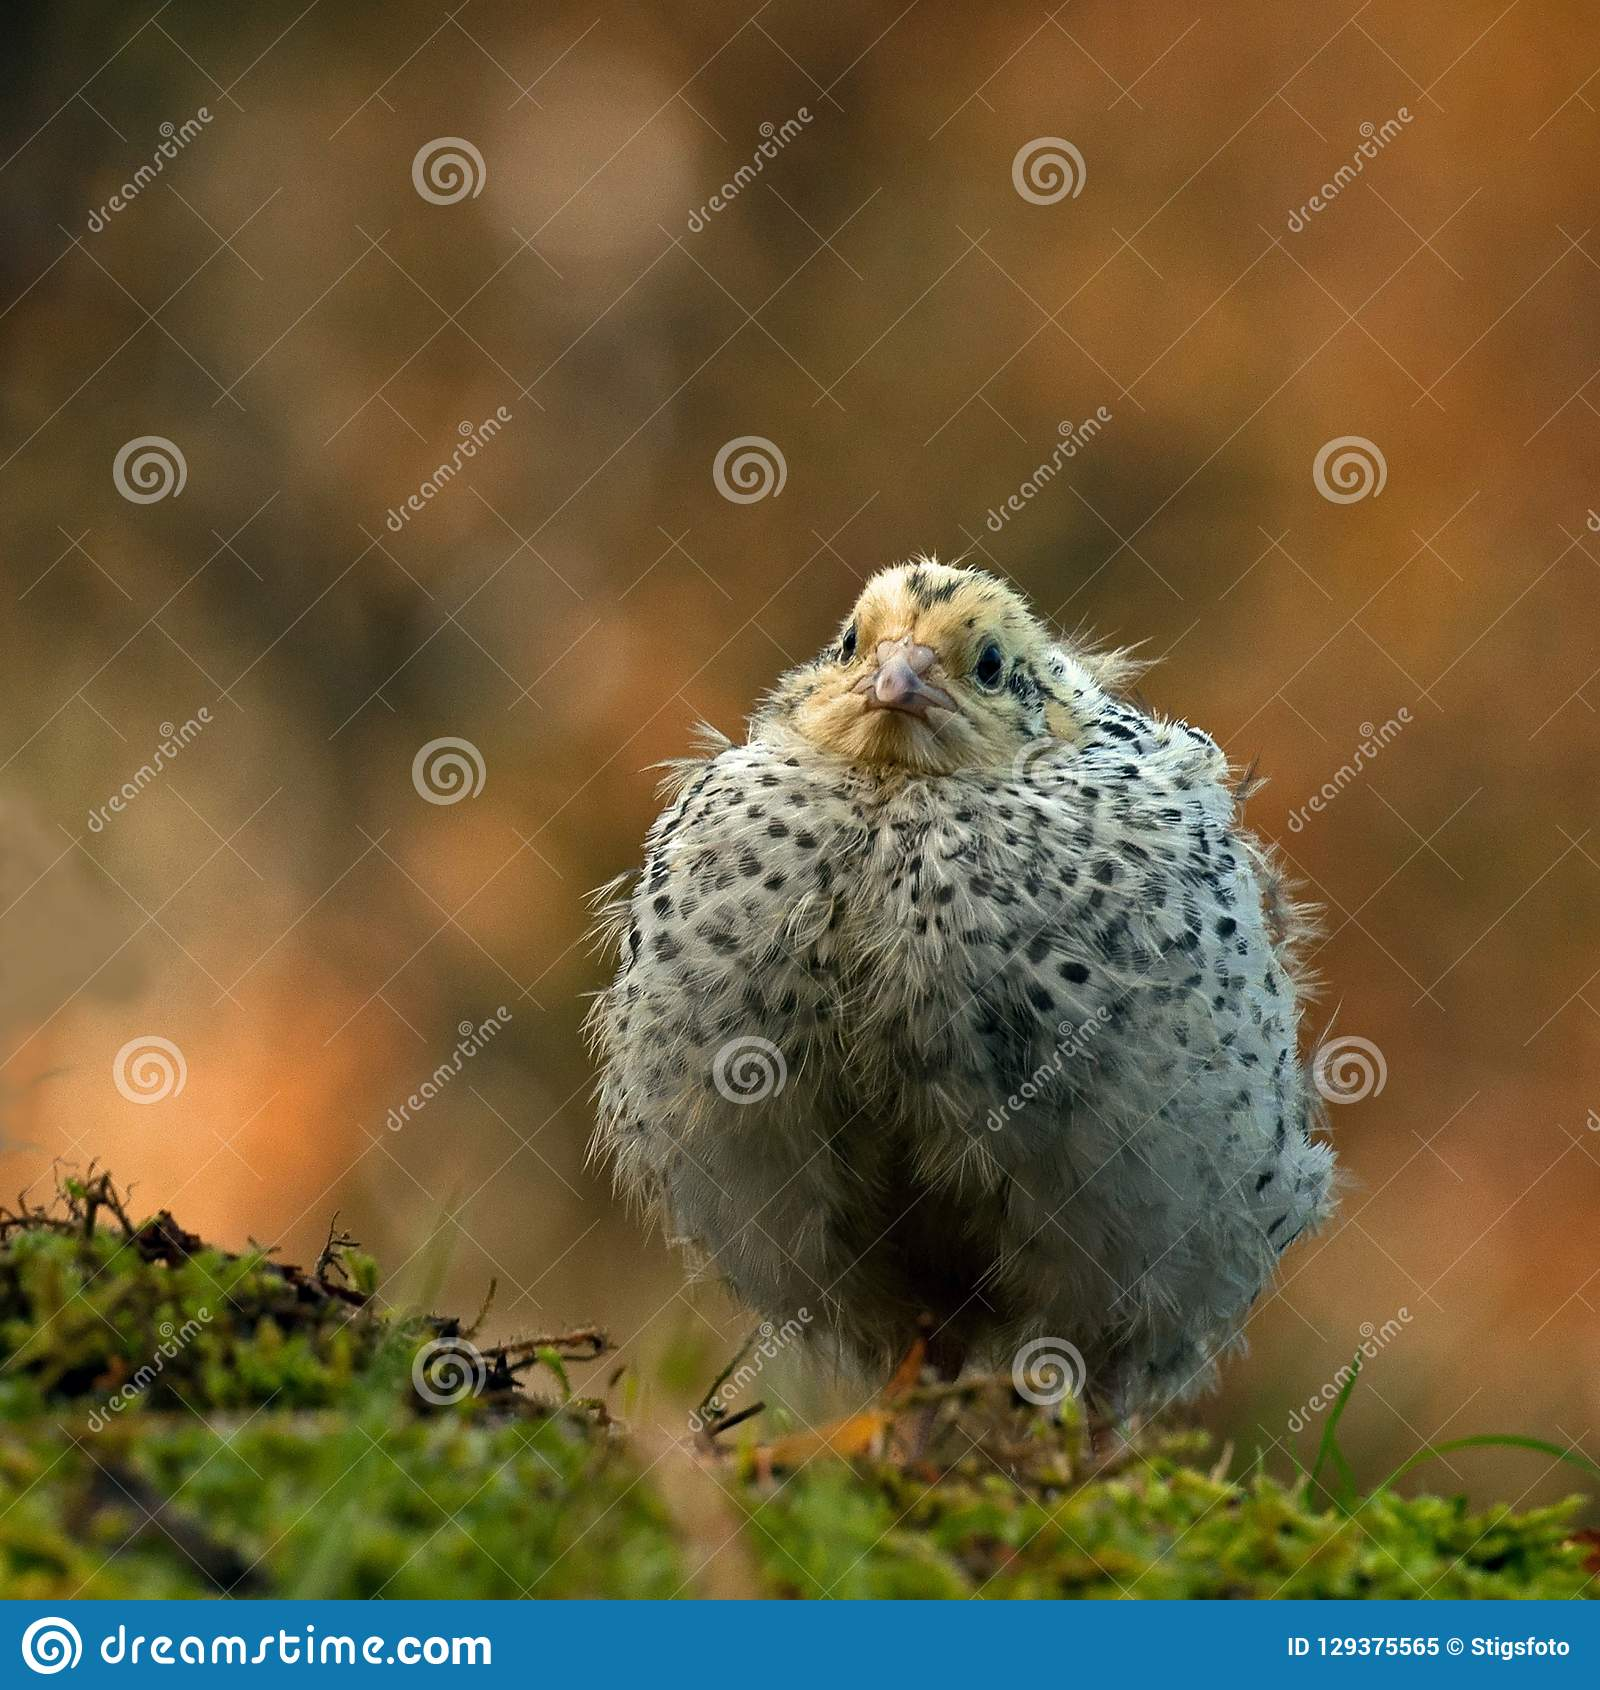 Twelve days old quail, Coturnix japonica..... photographed in nature.